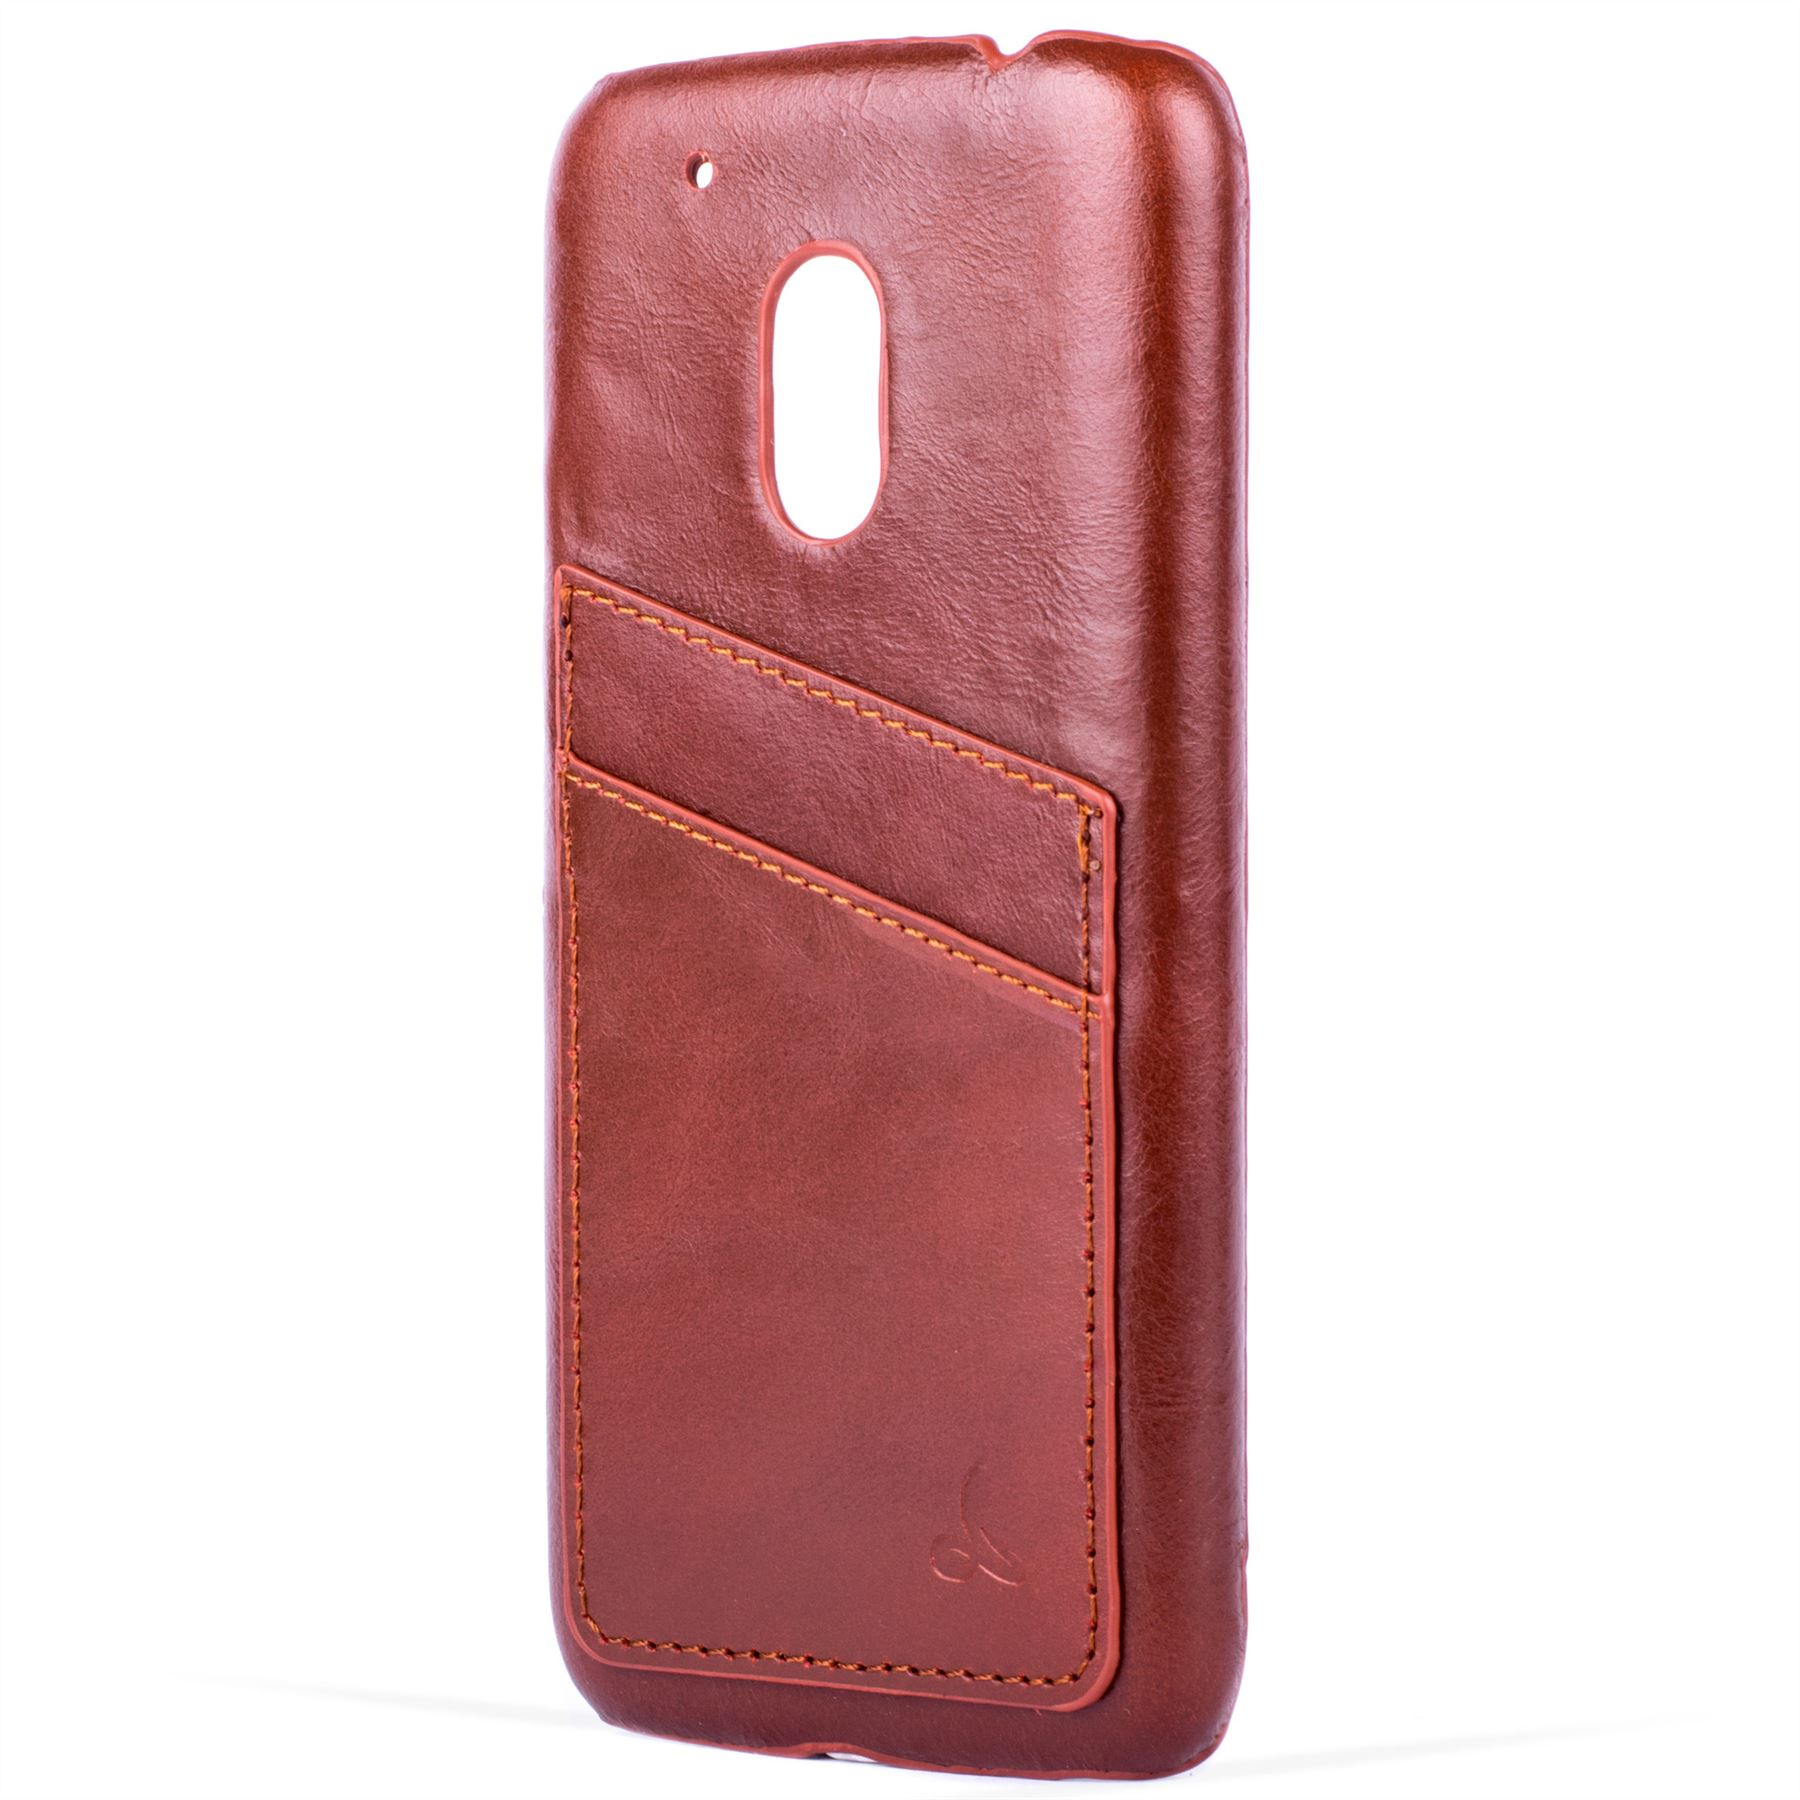 various colors 8fafc 9c411 Details about Snakehive® Motorola Moto G4 Play Leather Shell Back Case Slim  Cover w/Card Slots